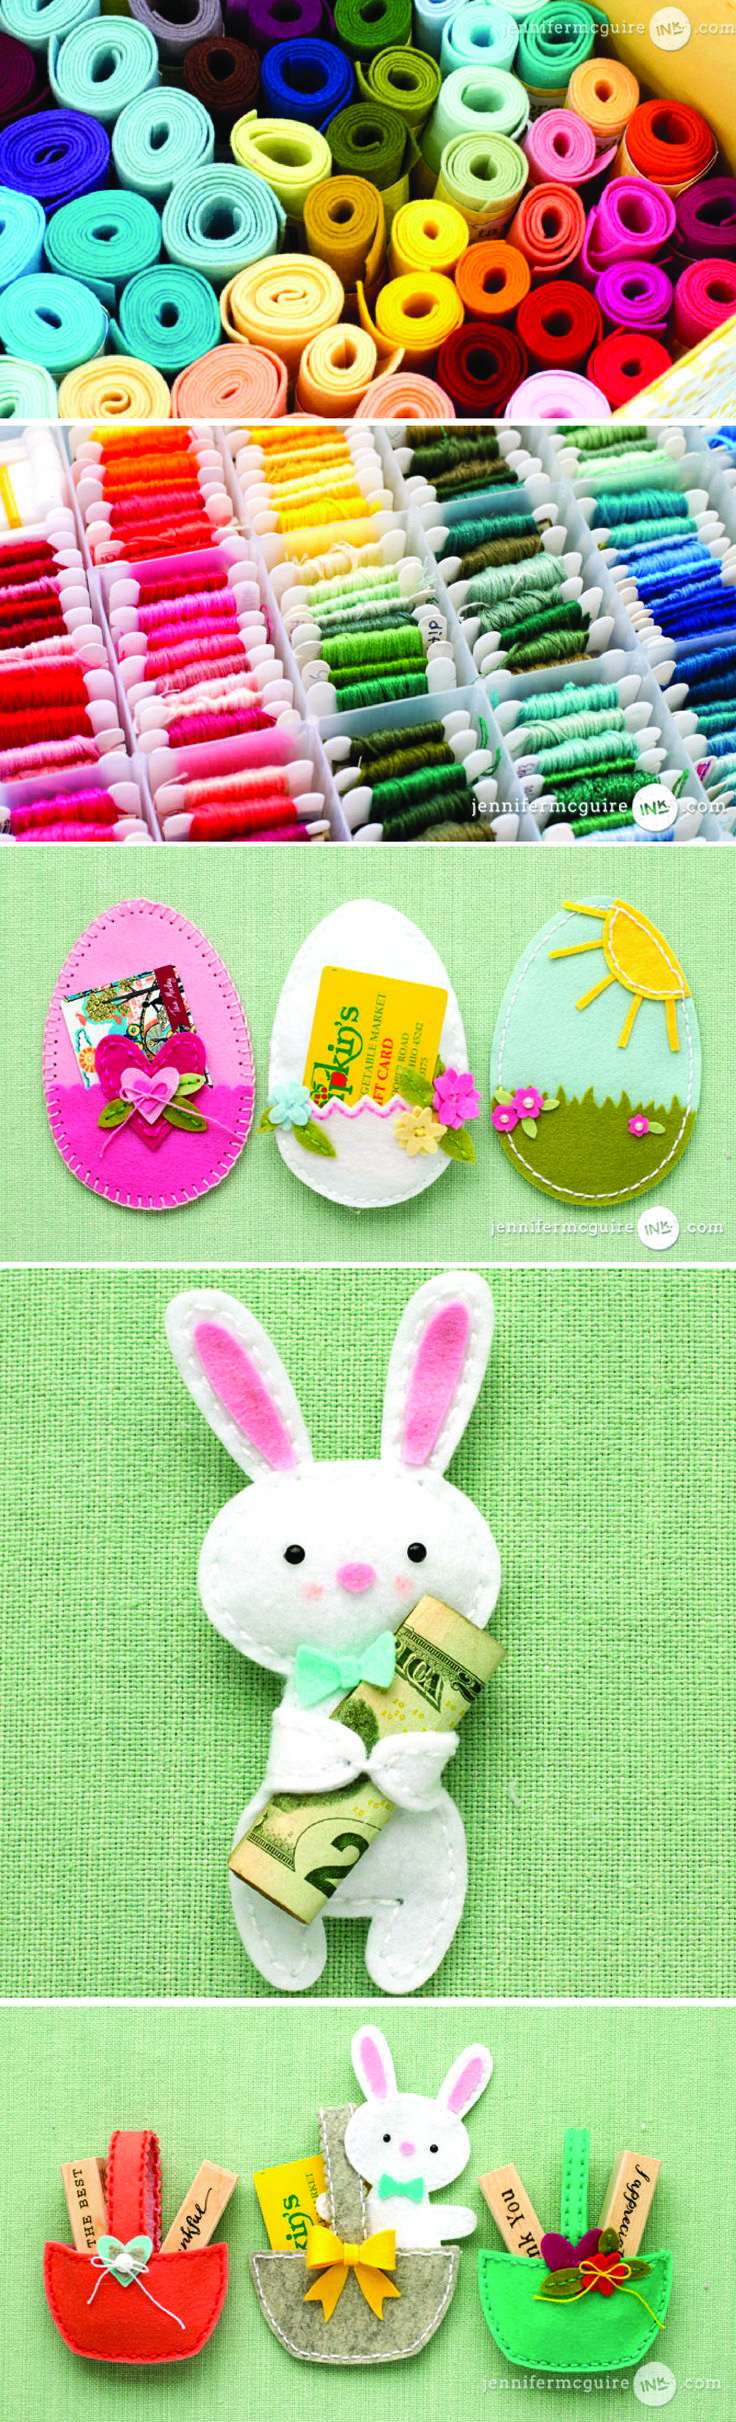 364 best easter images on pinterest easter ideas kid crafts and looking for a fun handmade diy project to include in your little ones easter basket negle Images